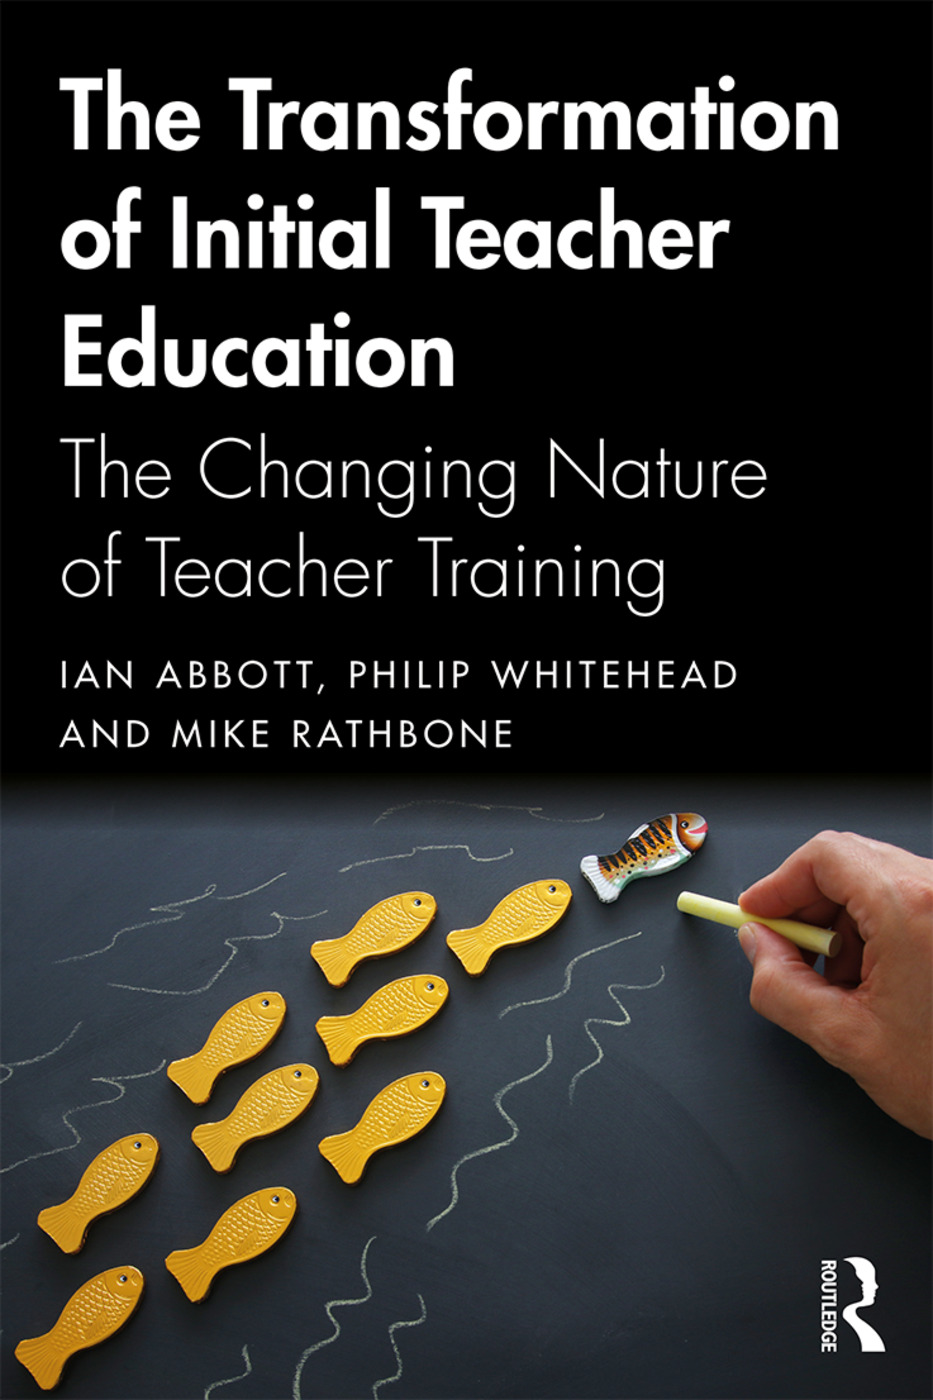 The Transformation of Initial Teacher Education